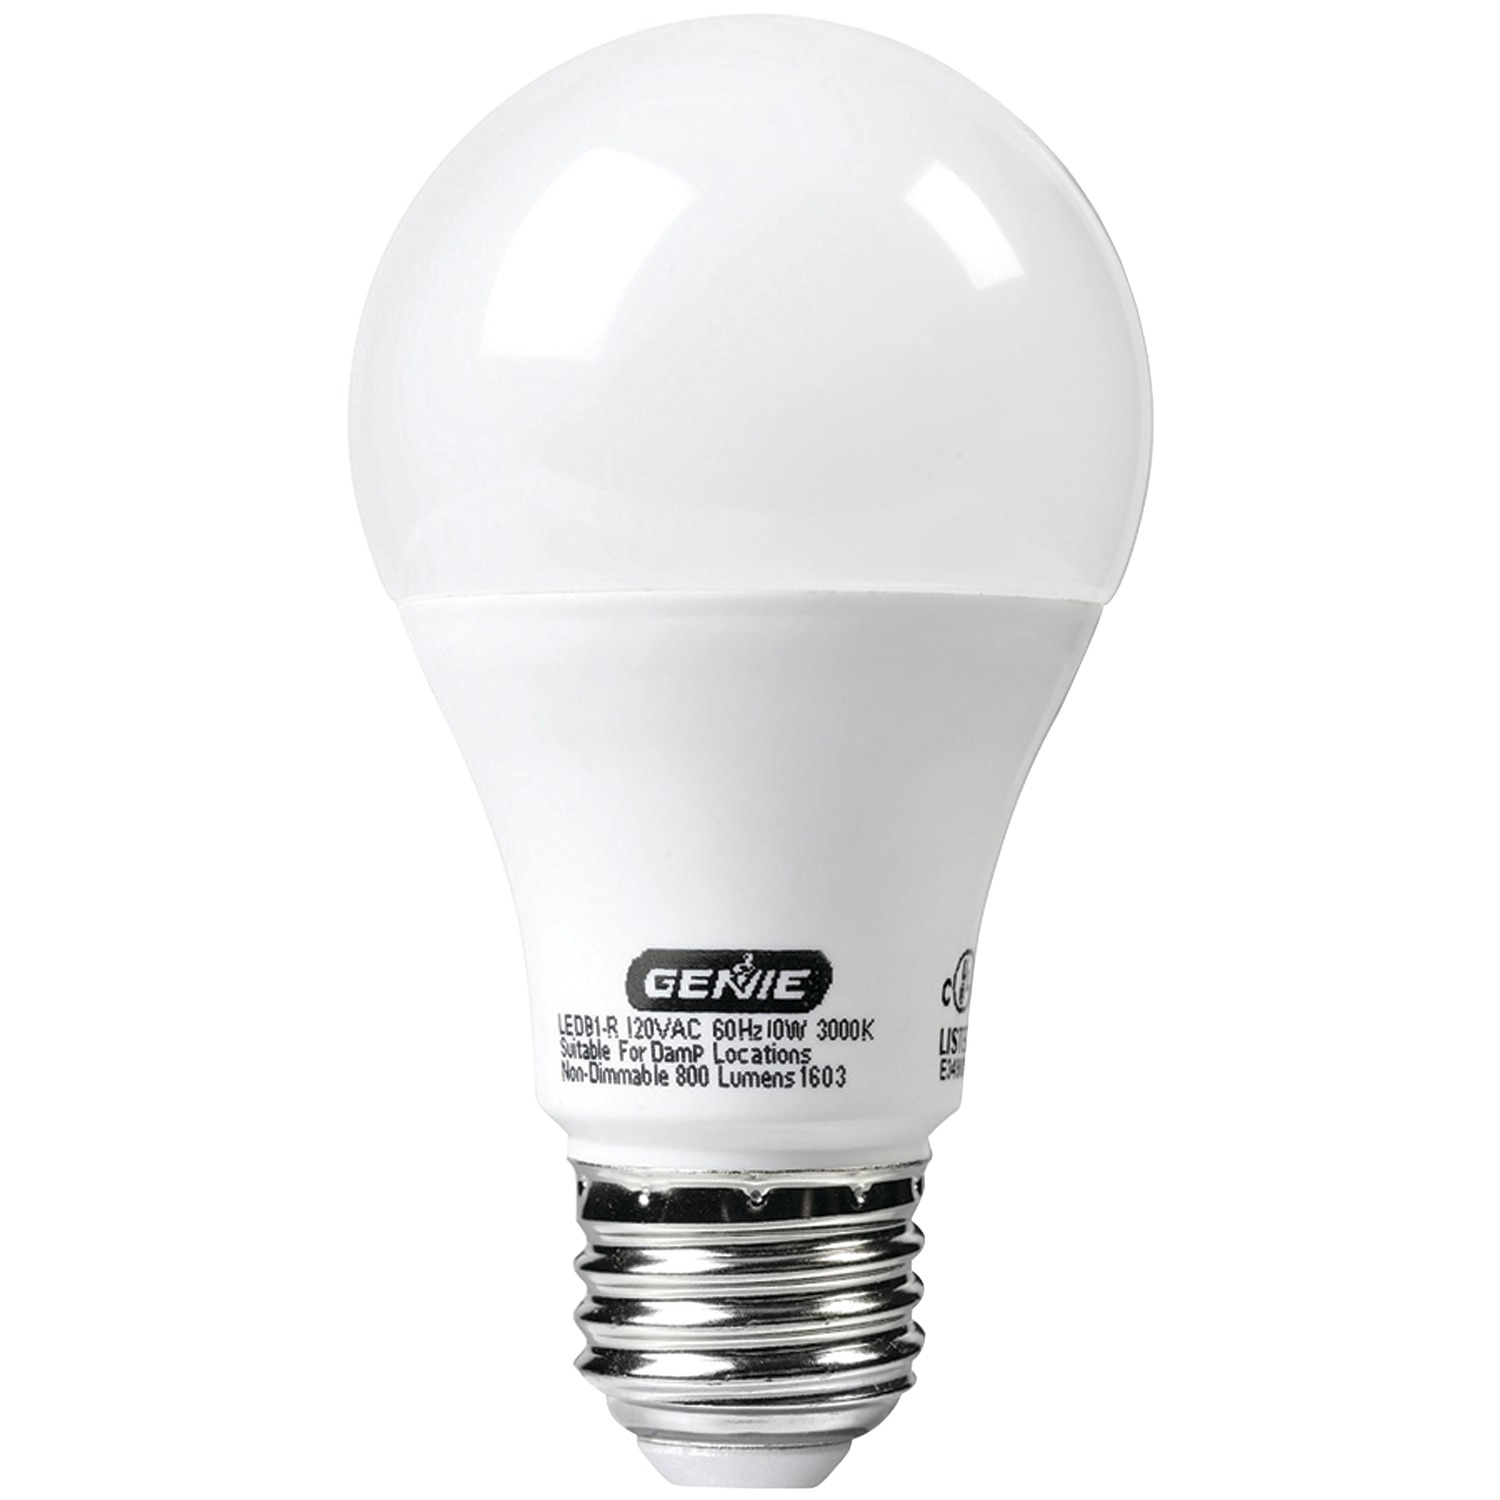 Led Lights On Garage Door Opener: LED Garage Door Opener Bulb